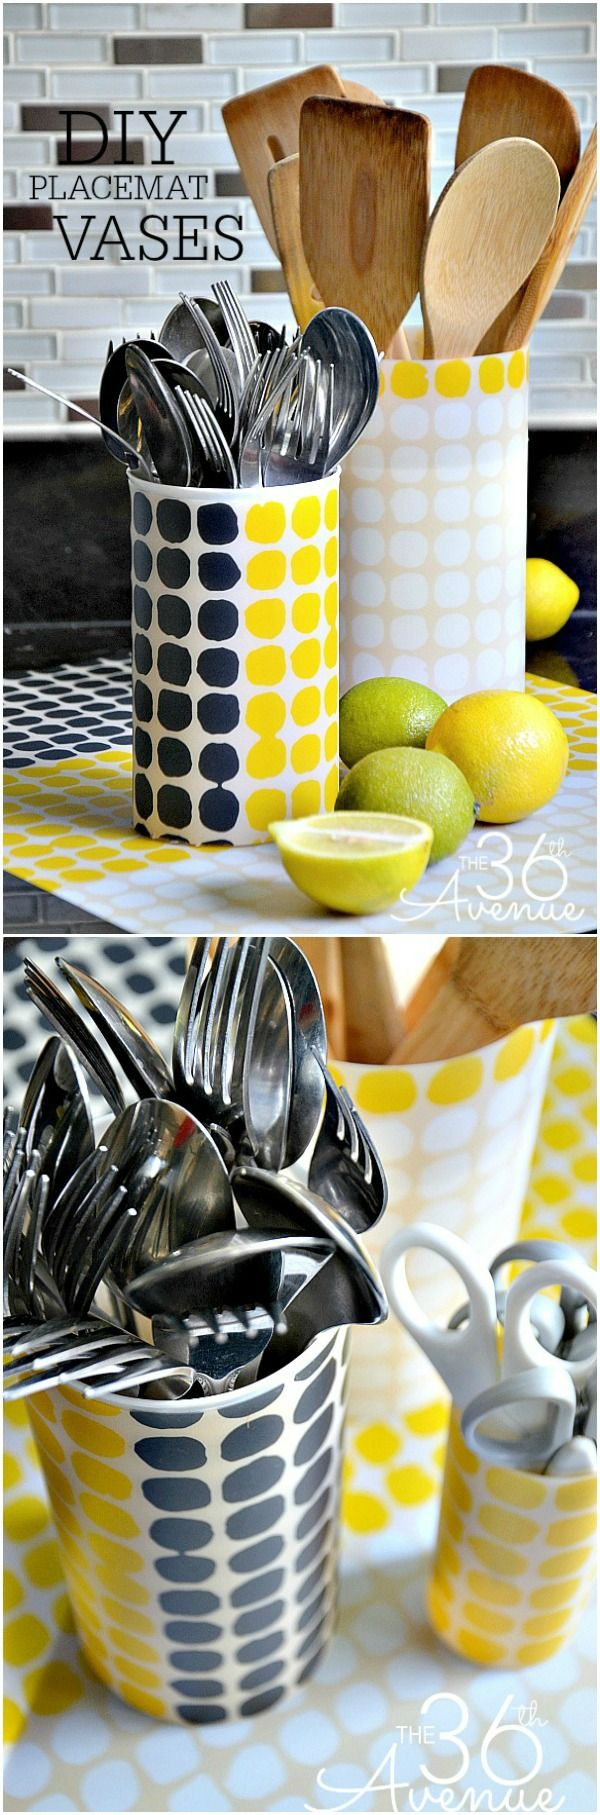 DIY Vases made with a placemat... Super cute, easy and affordable!